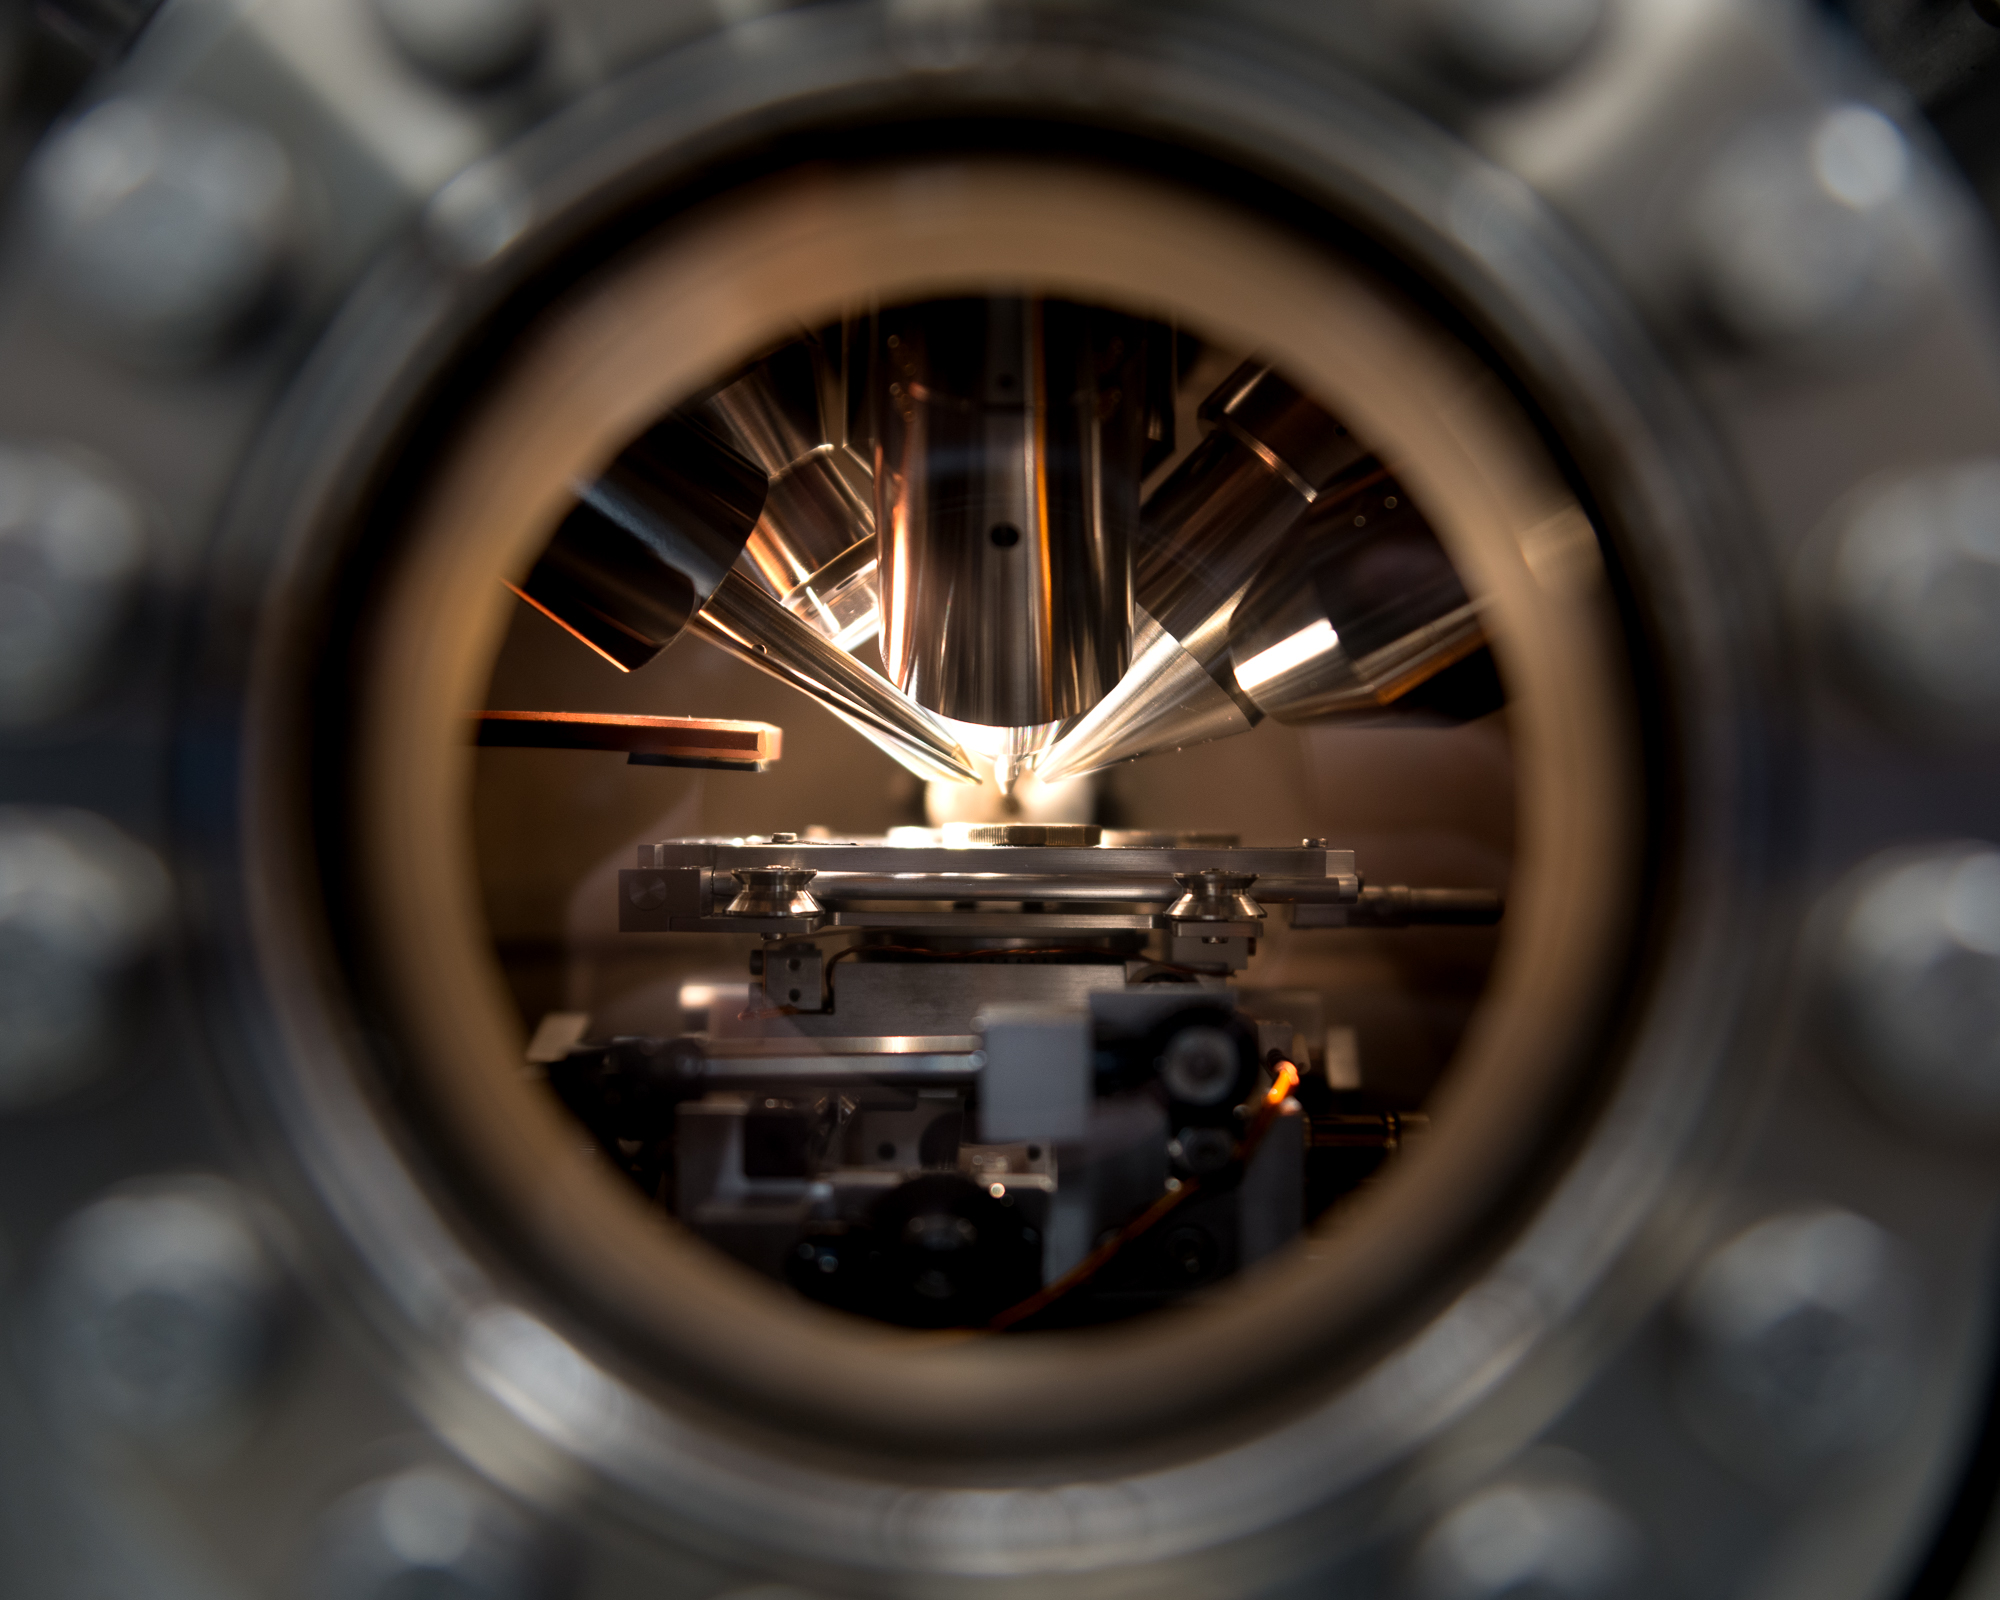 A macro photo through a circular window looking at several sensing instruments pointing at a coin.